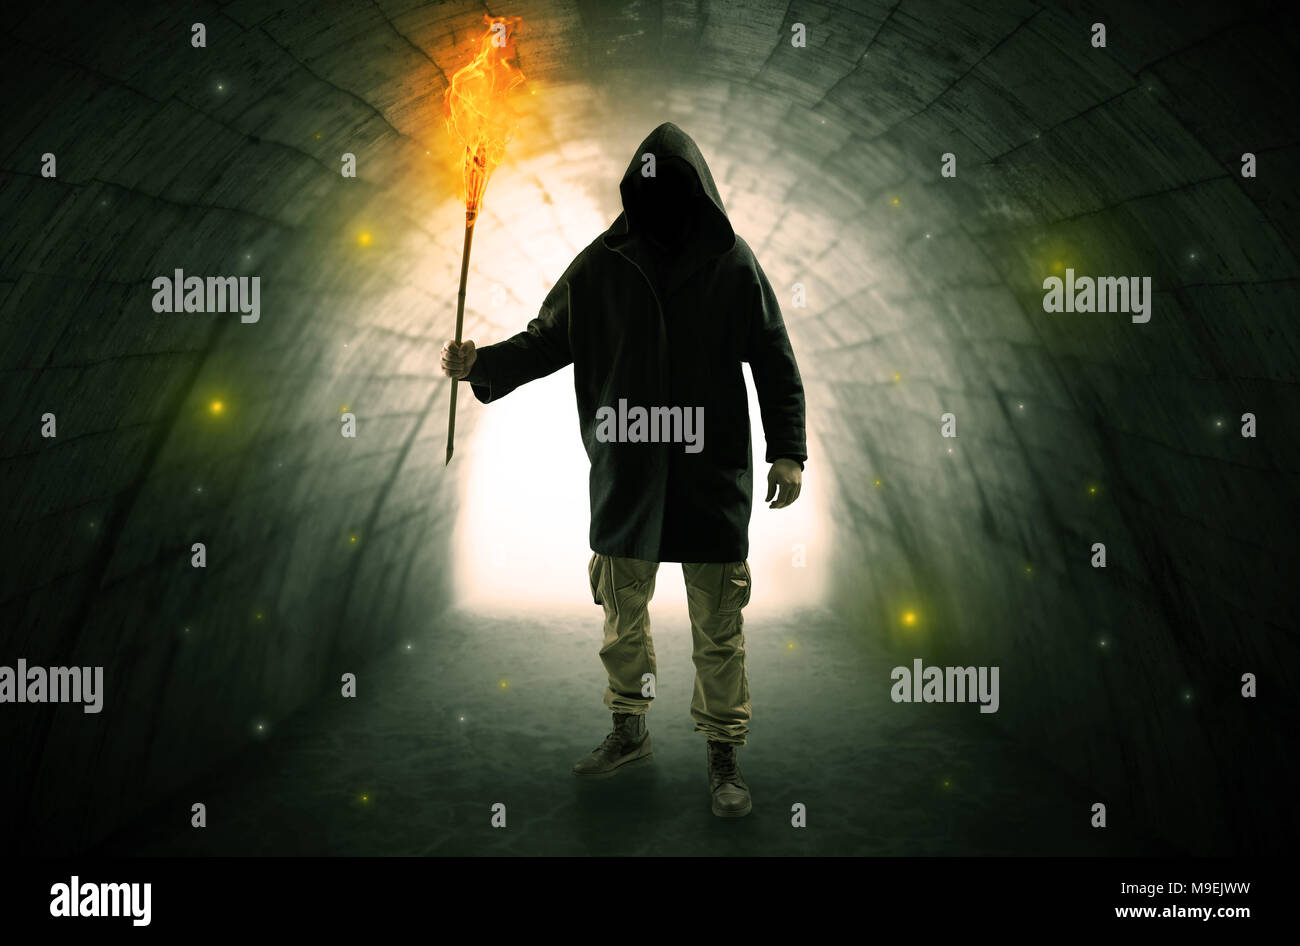 Ugly man with burning flambeau walking in a dark tunnel - Stock Image